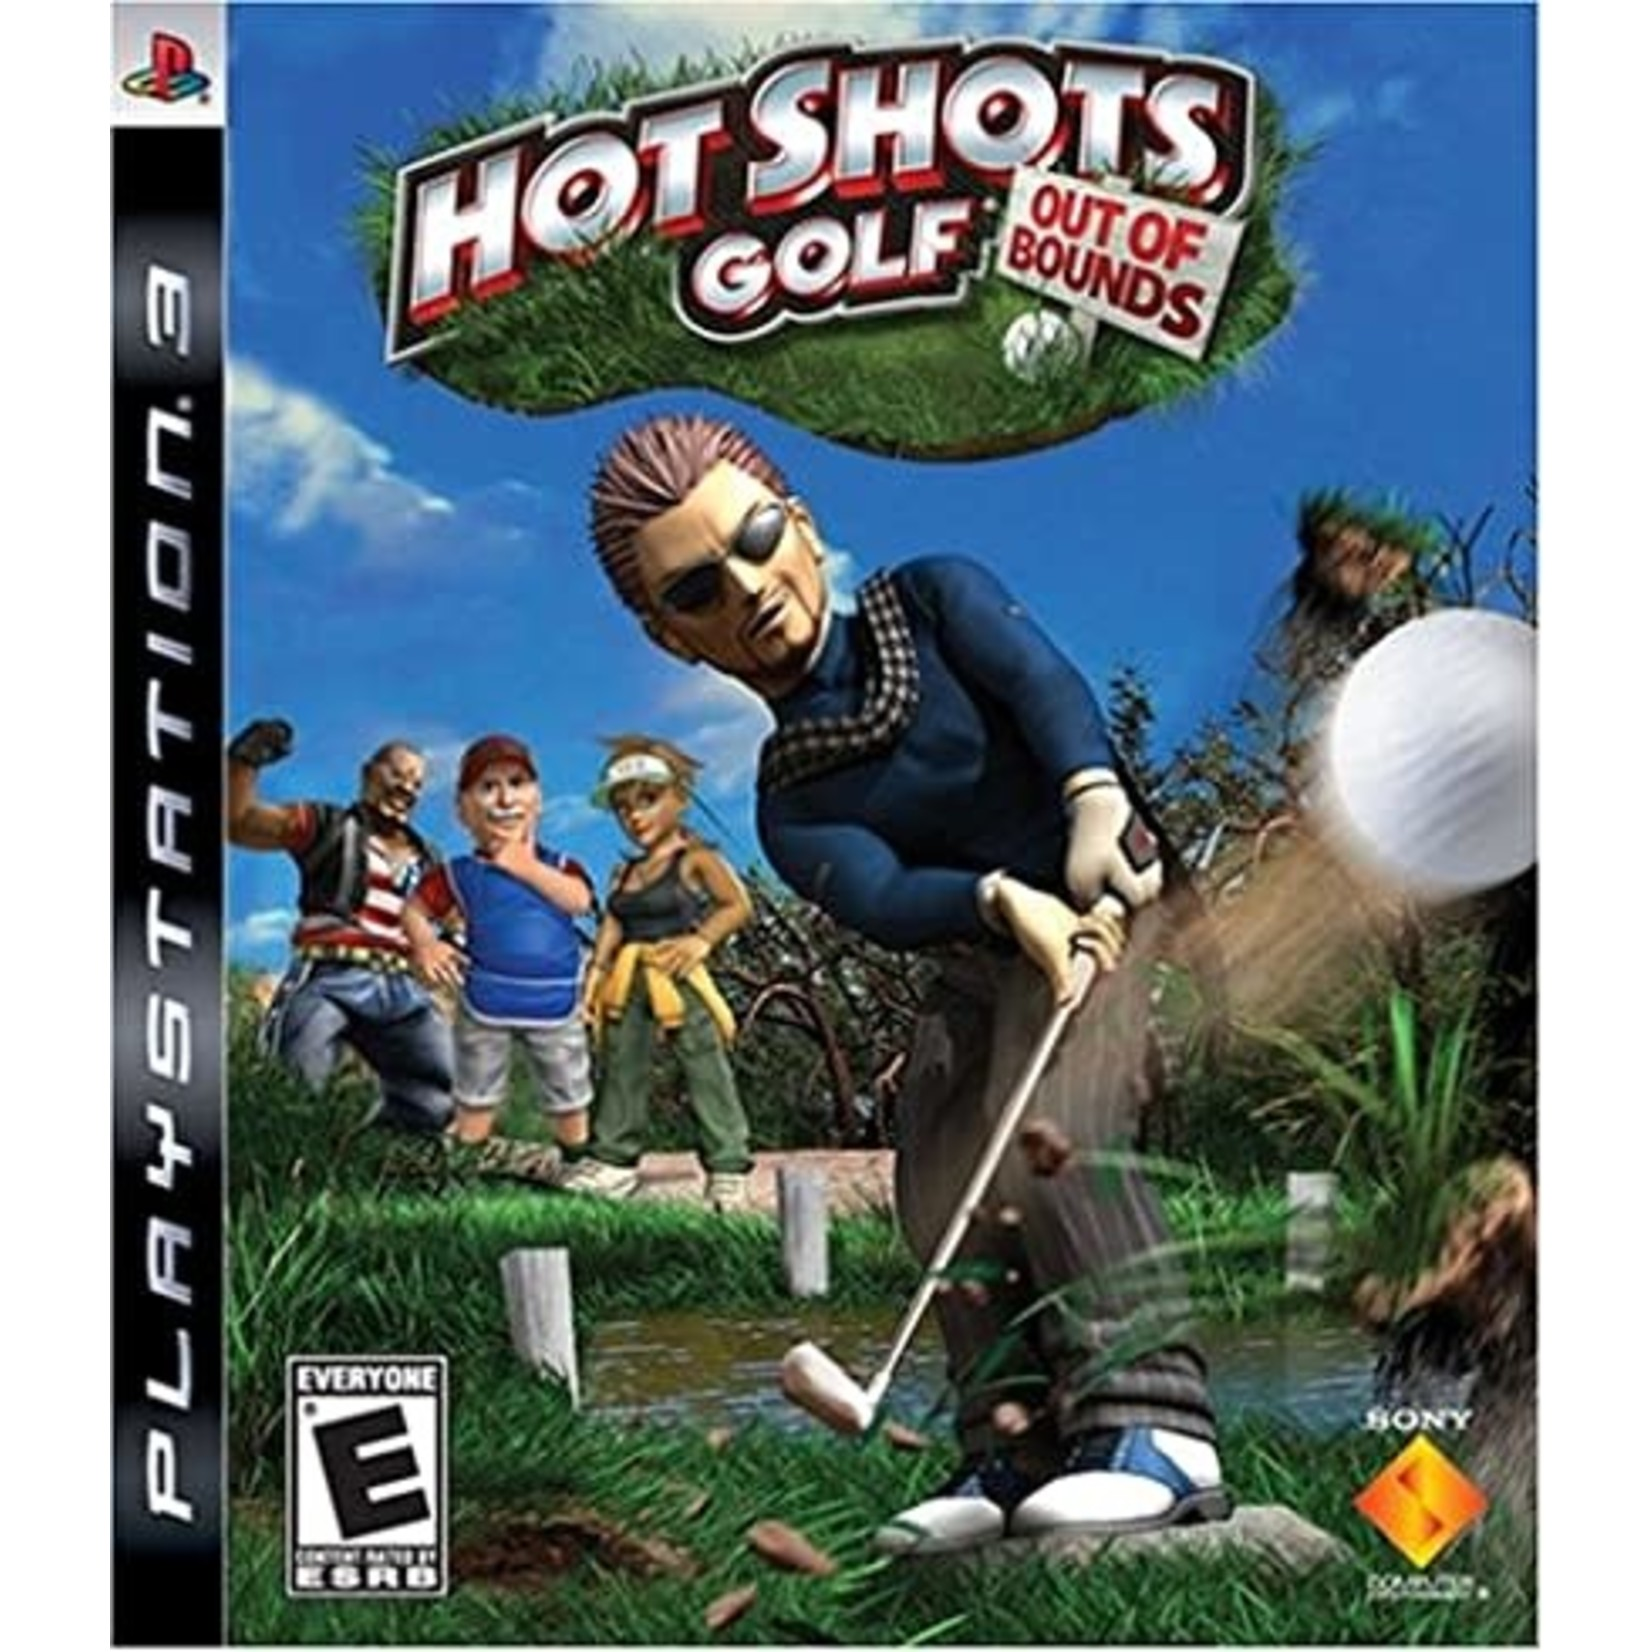 PS3U-HOT SHOTS GOLF: OUT OF BOUNDS